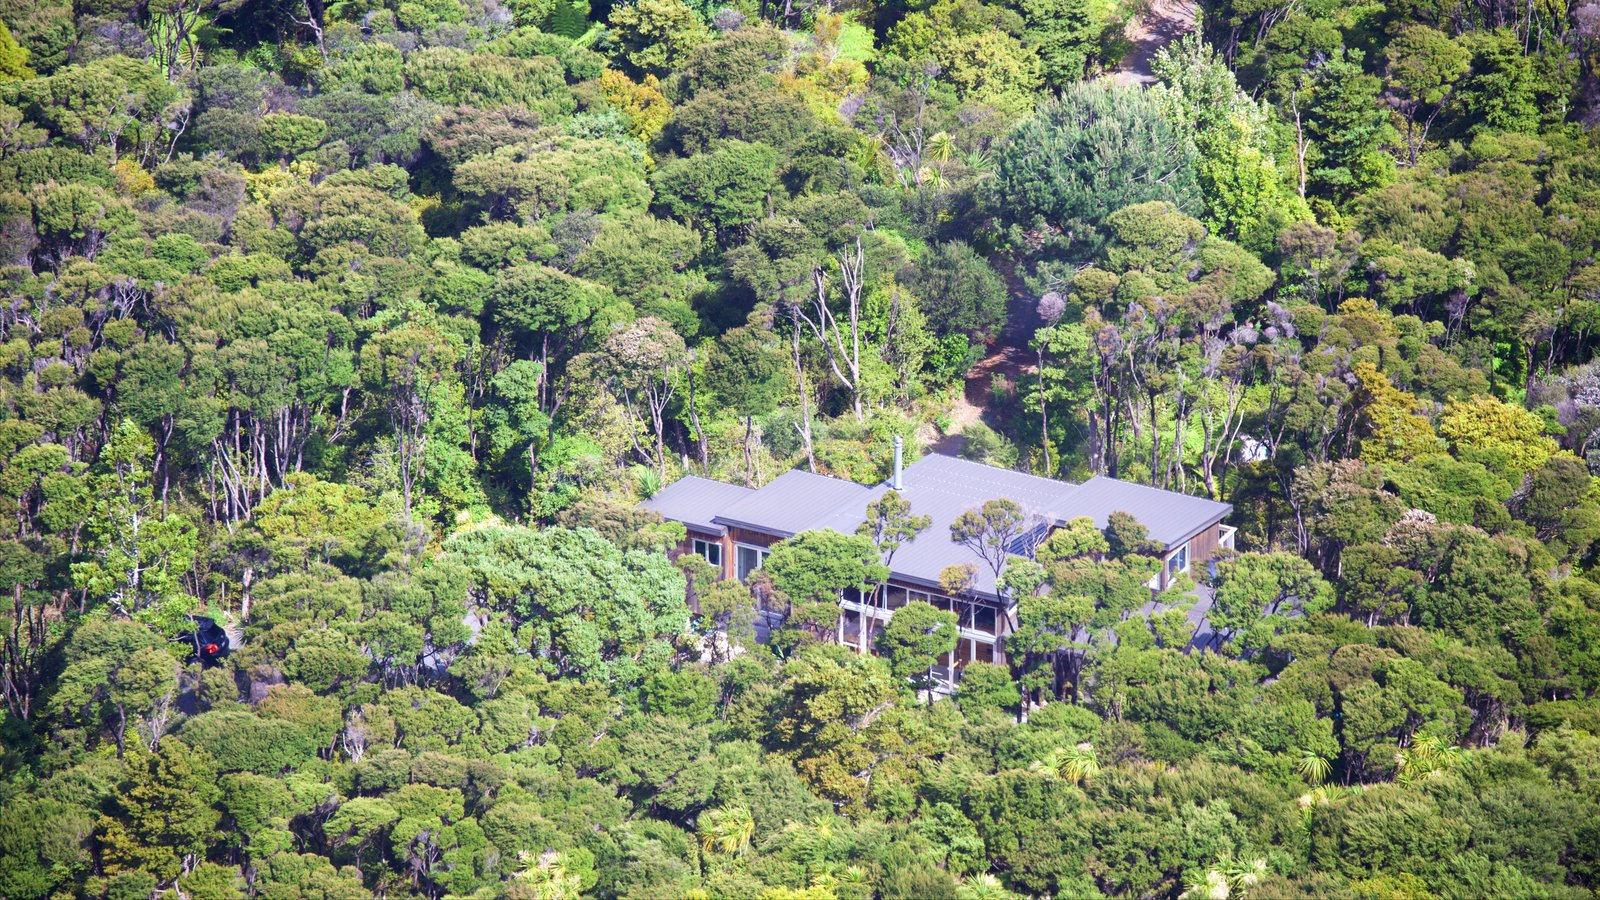 Mount Manaia showing forests and a house